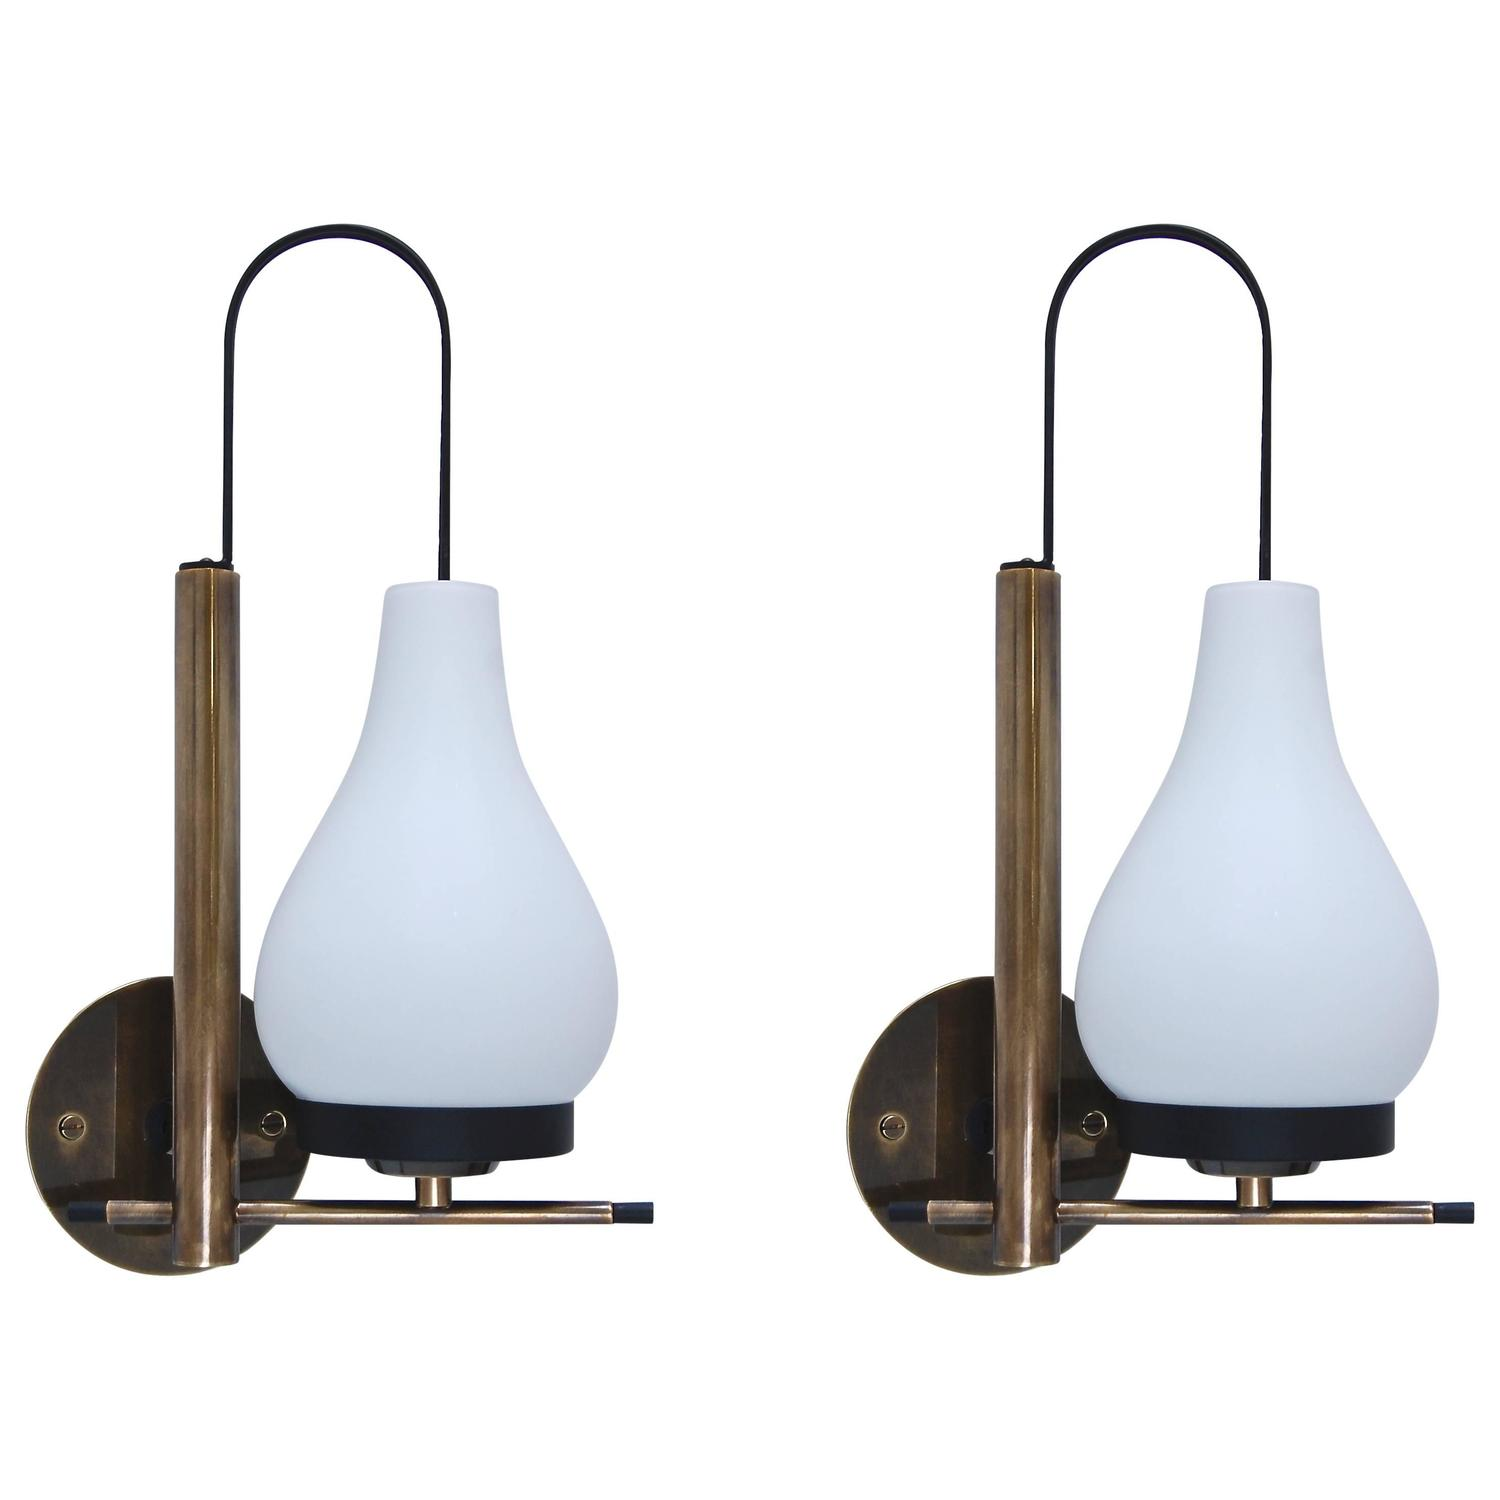 Wall Sconces Mid Century Modern : Mid-Century Modern Italian Sconces at 1stdibs